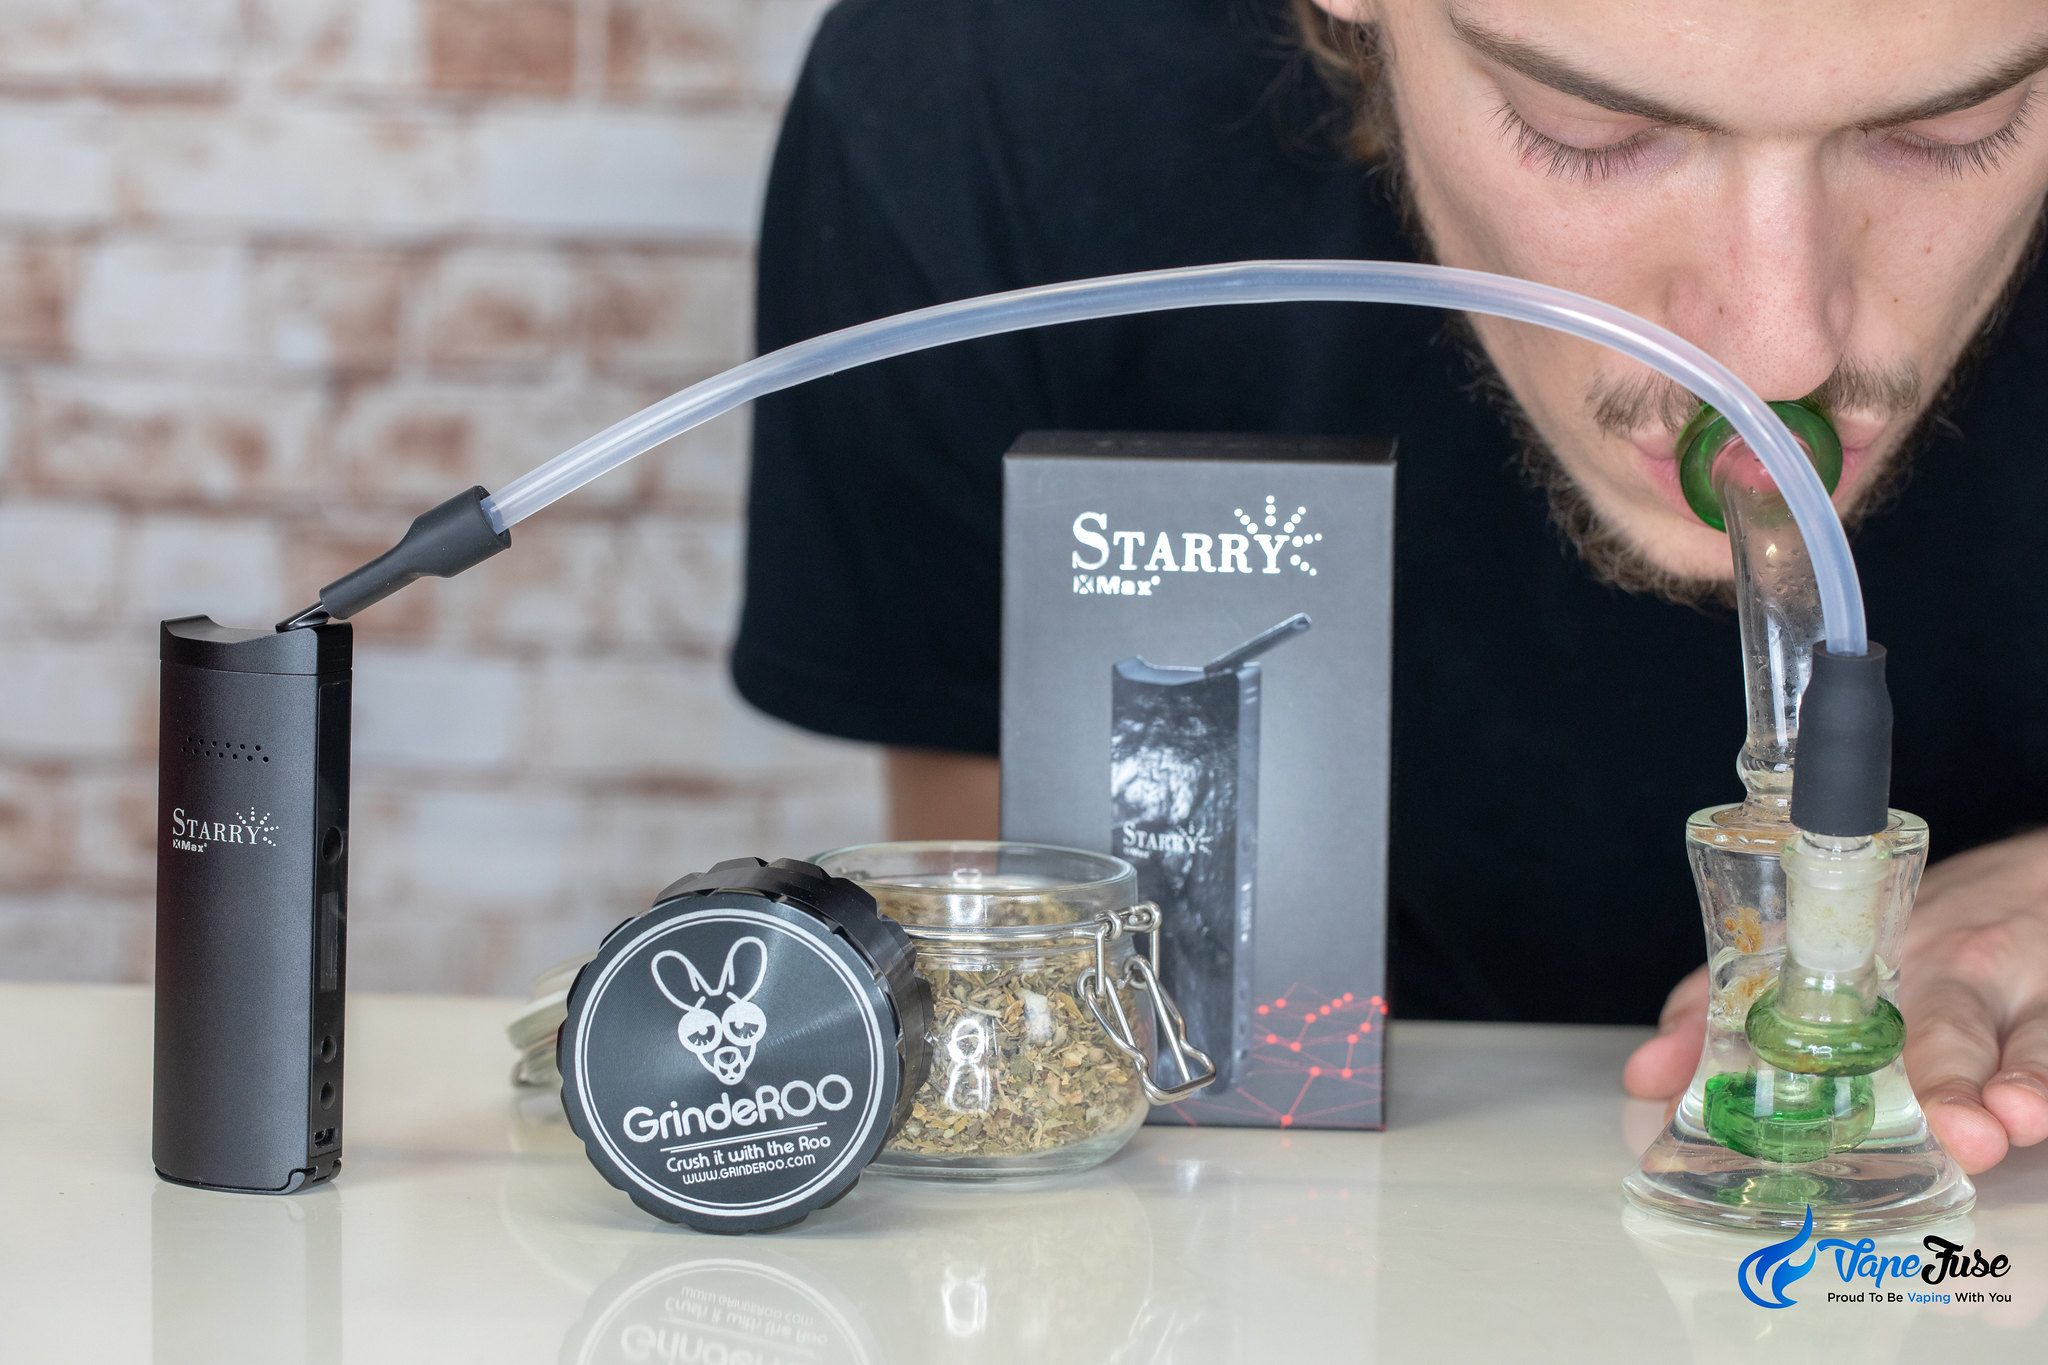 Xmax Starry vaporizer connected to water pipe